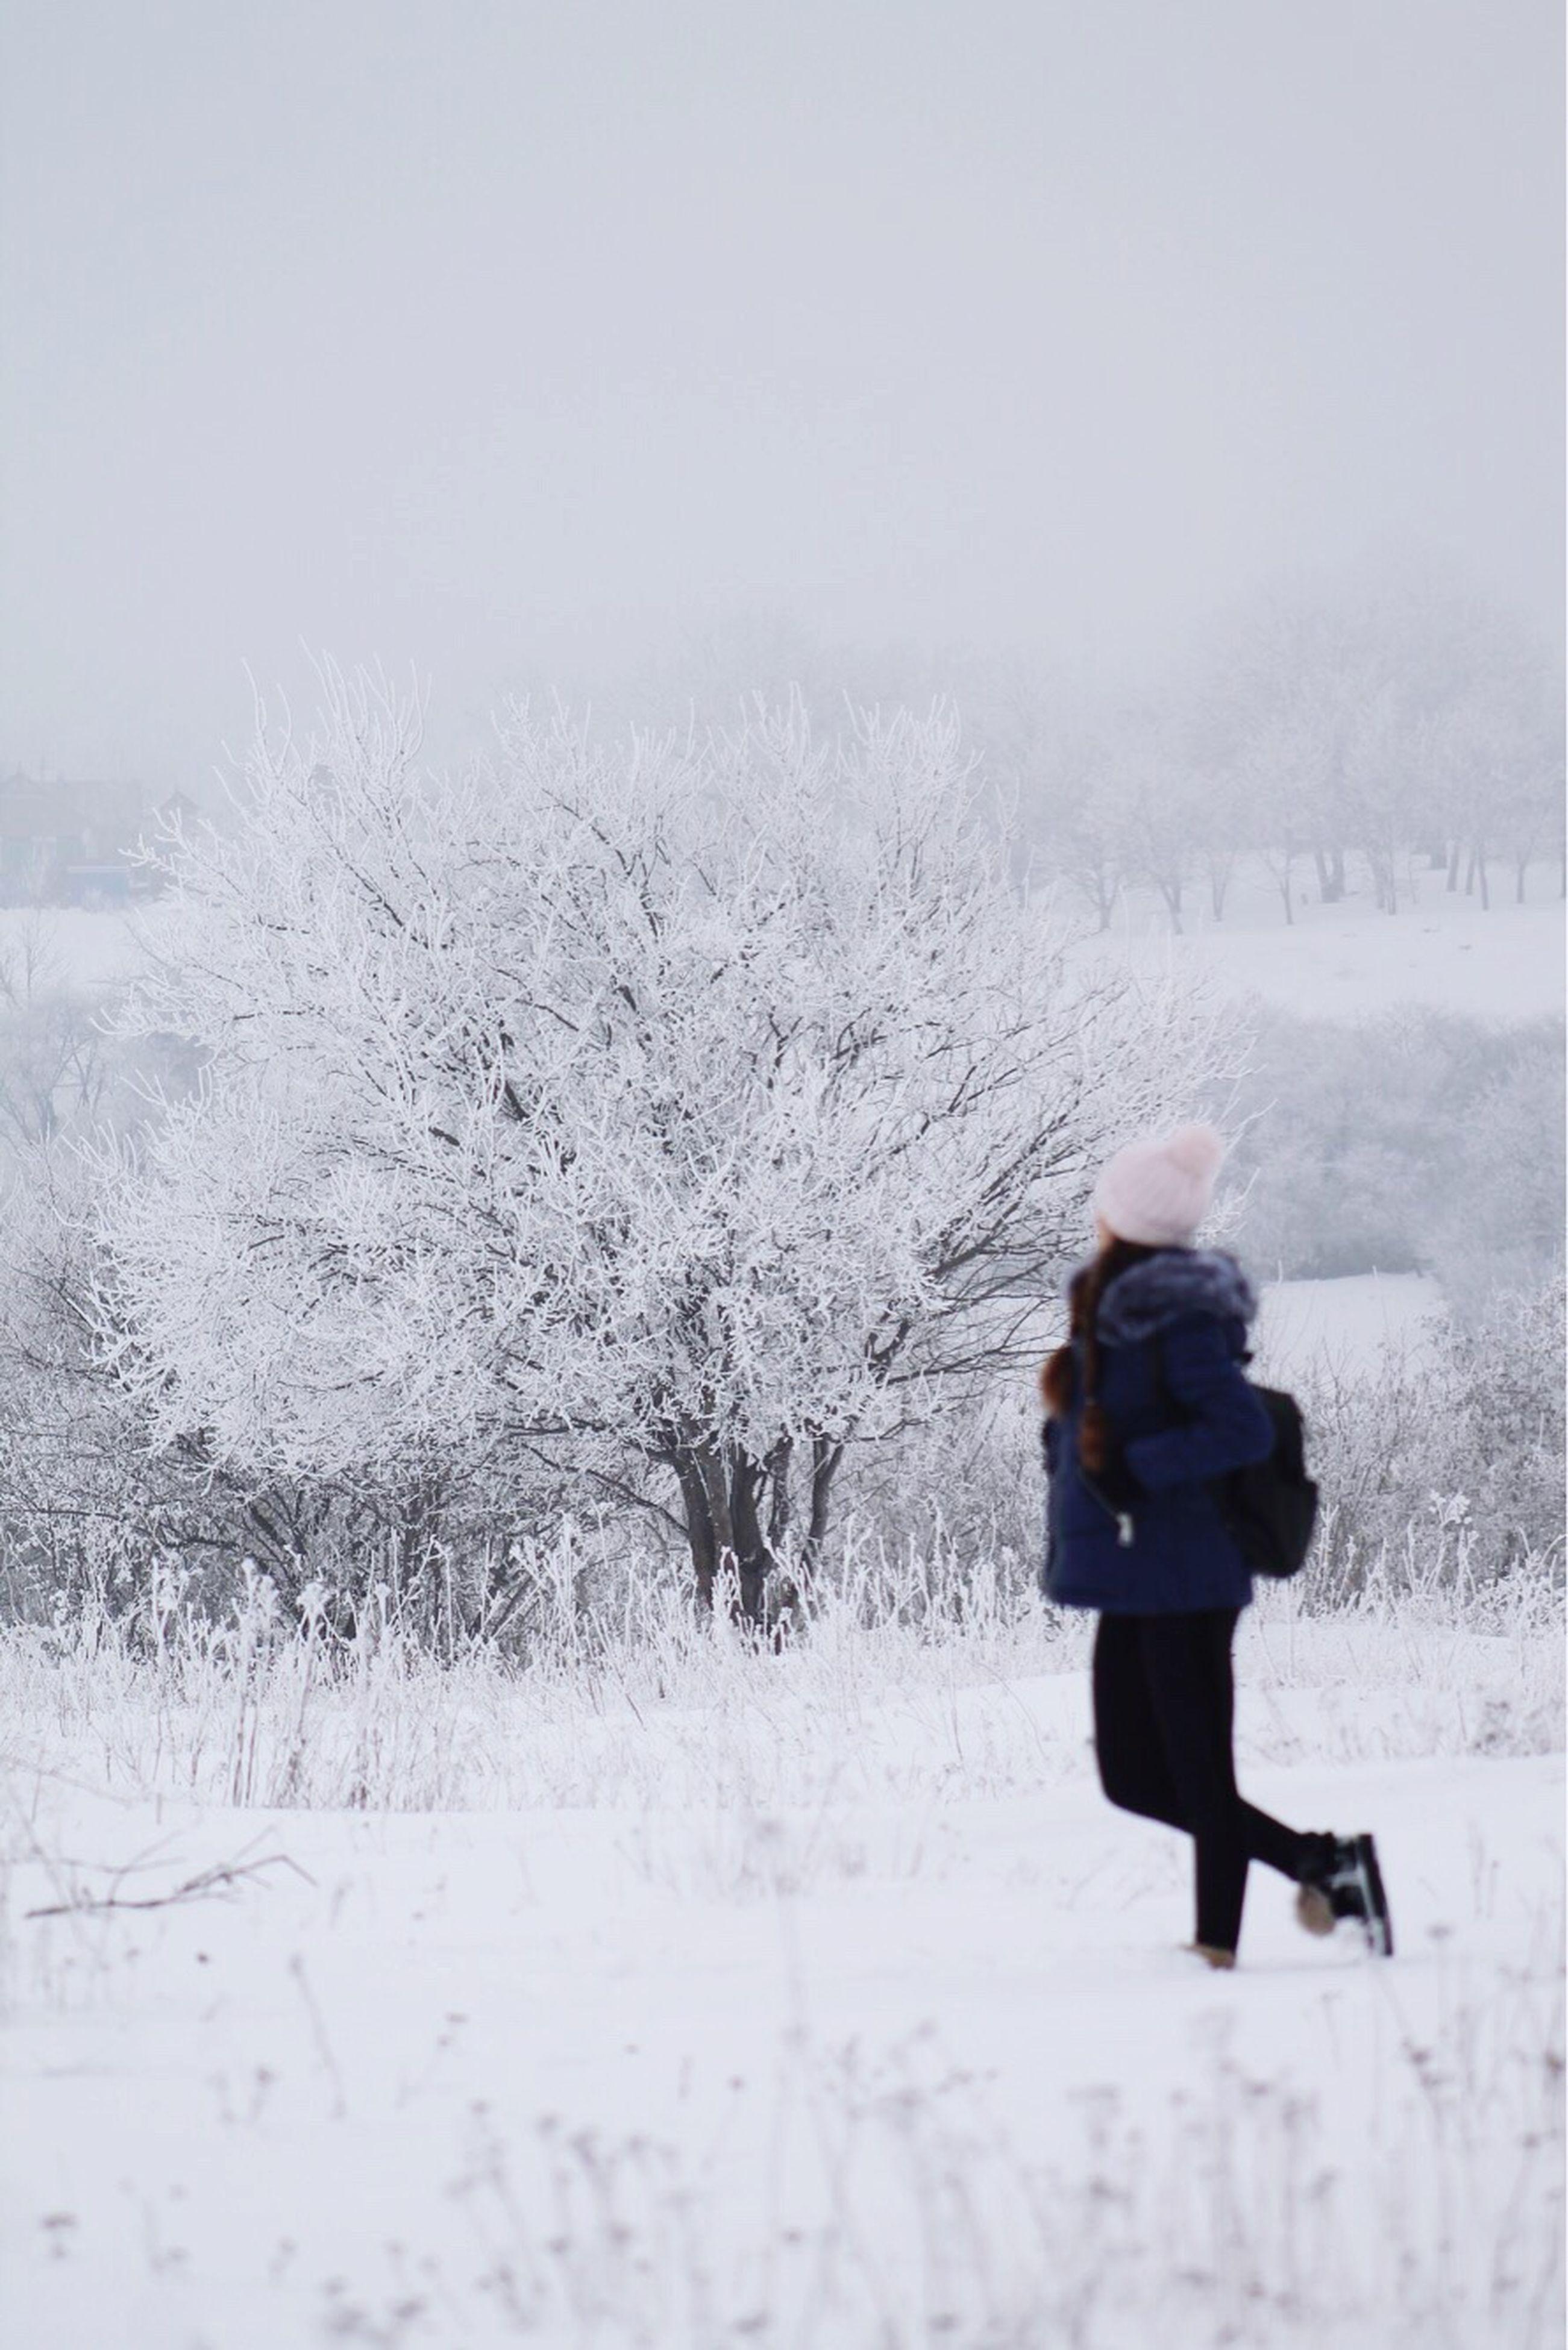 winter, snow, cold temperature, weather, full length, nature, one person, beauty in nature, warm clothing, rear view, leisure activity, lifestyles, day, outdoors, women, snowing, tree, scenics, vacations, one woman only, people, adult, adults only